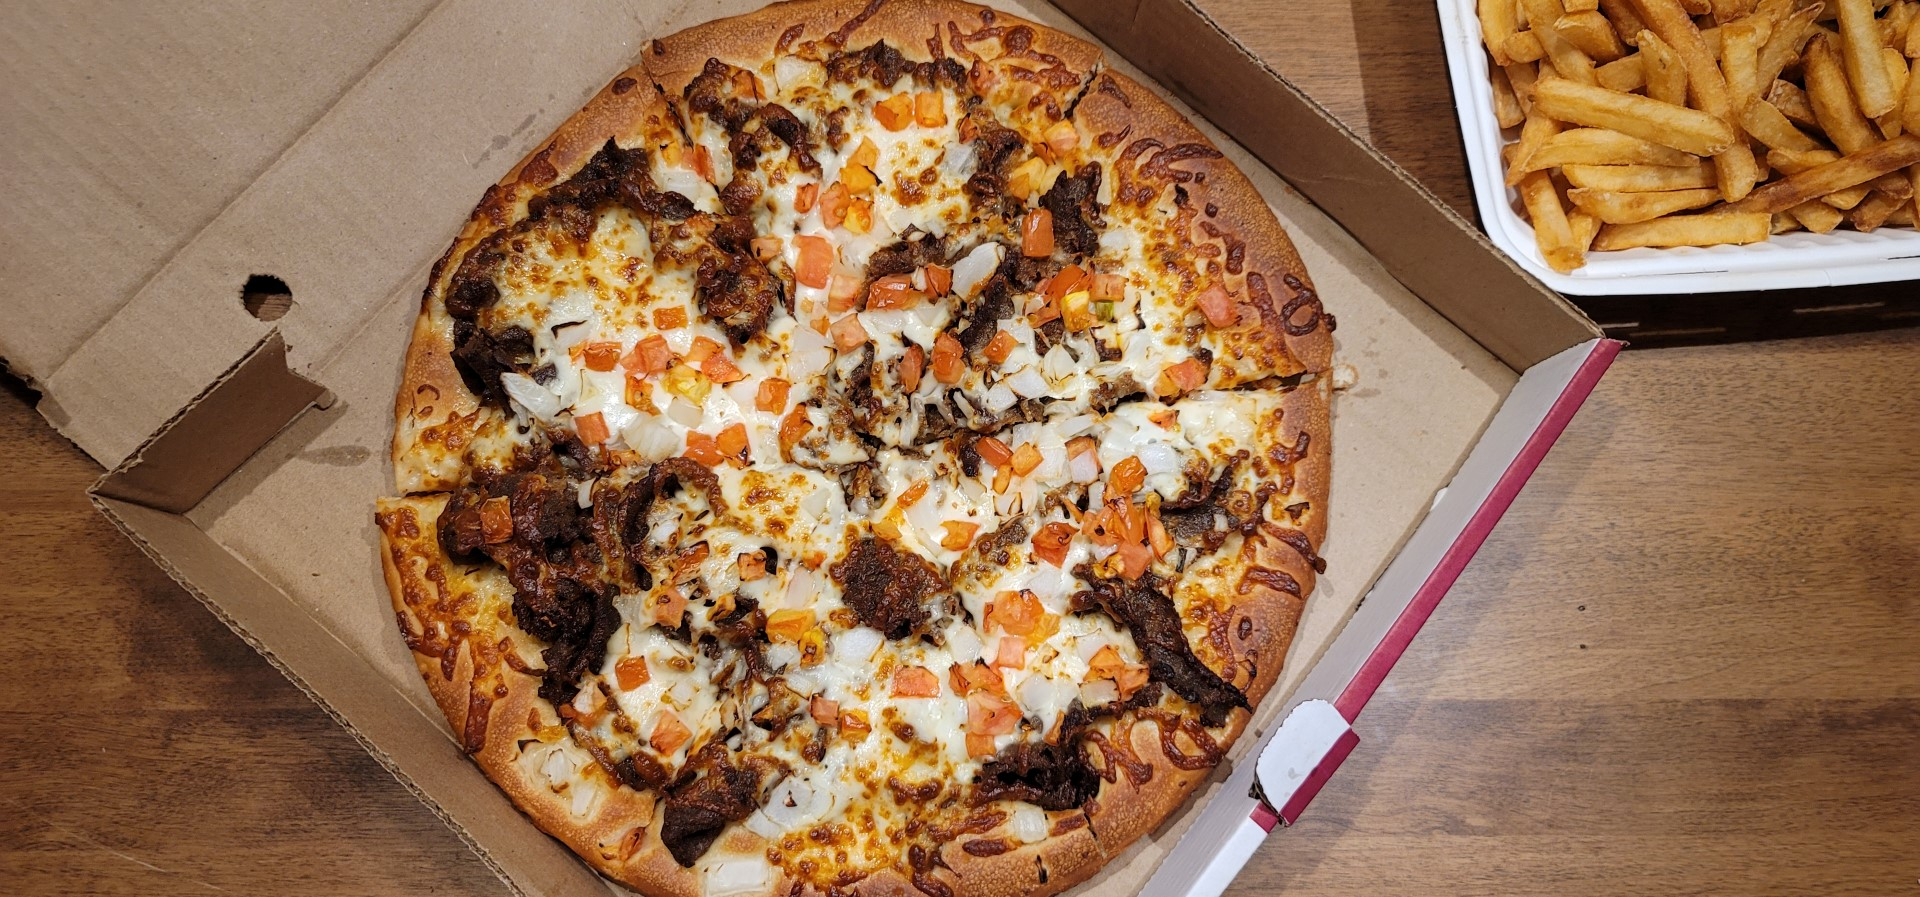 donairPizza from Alexandra's in Halifax delivery